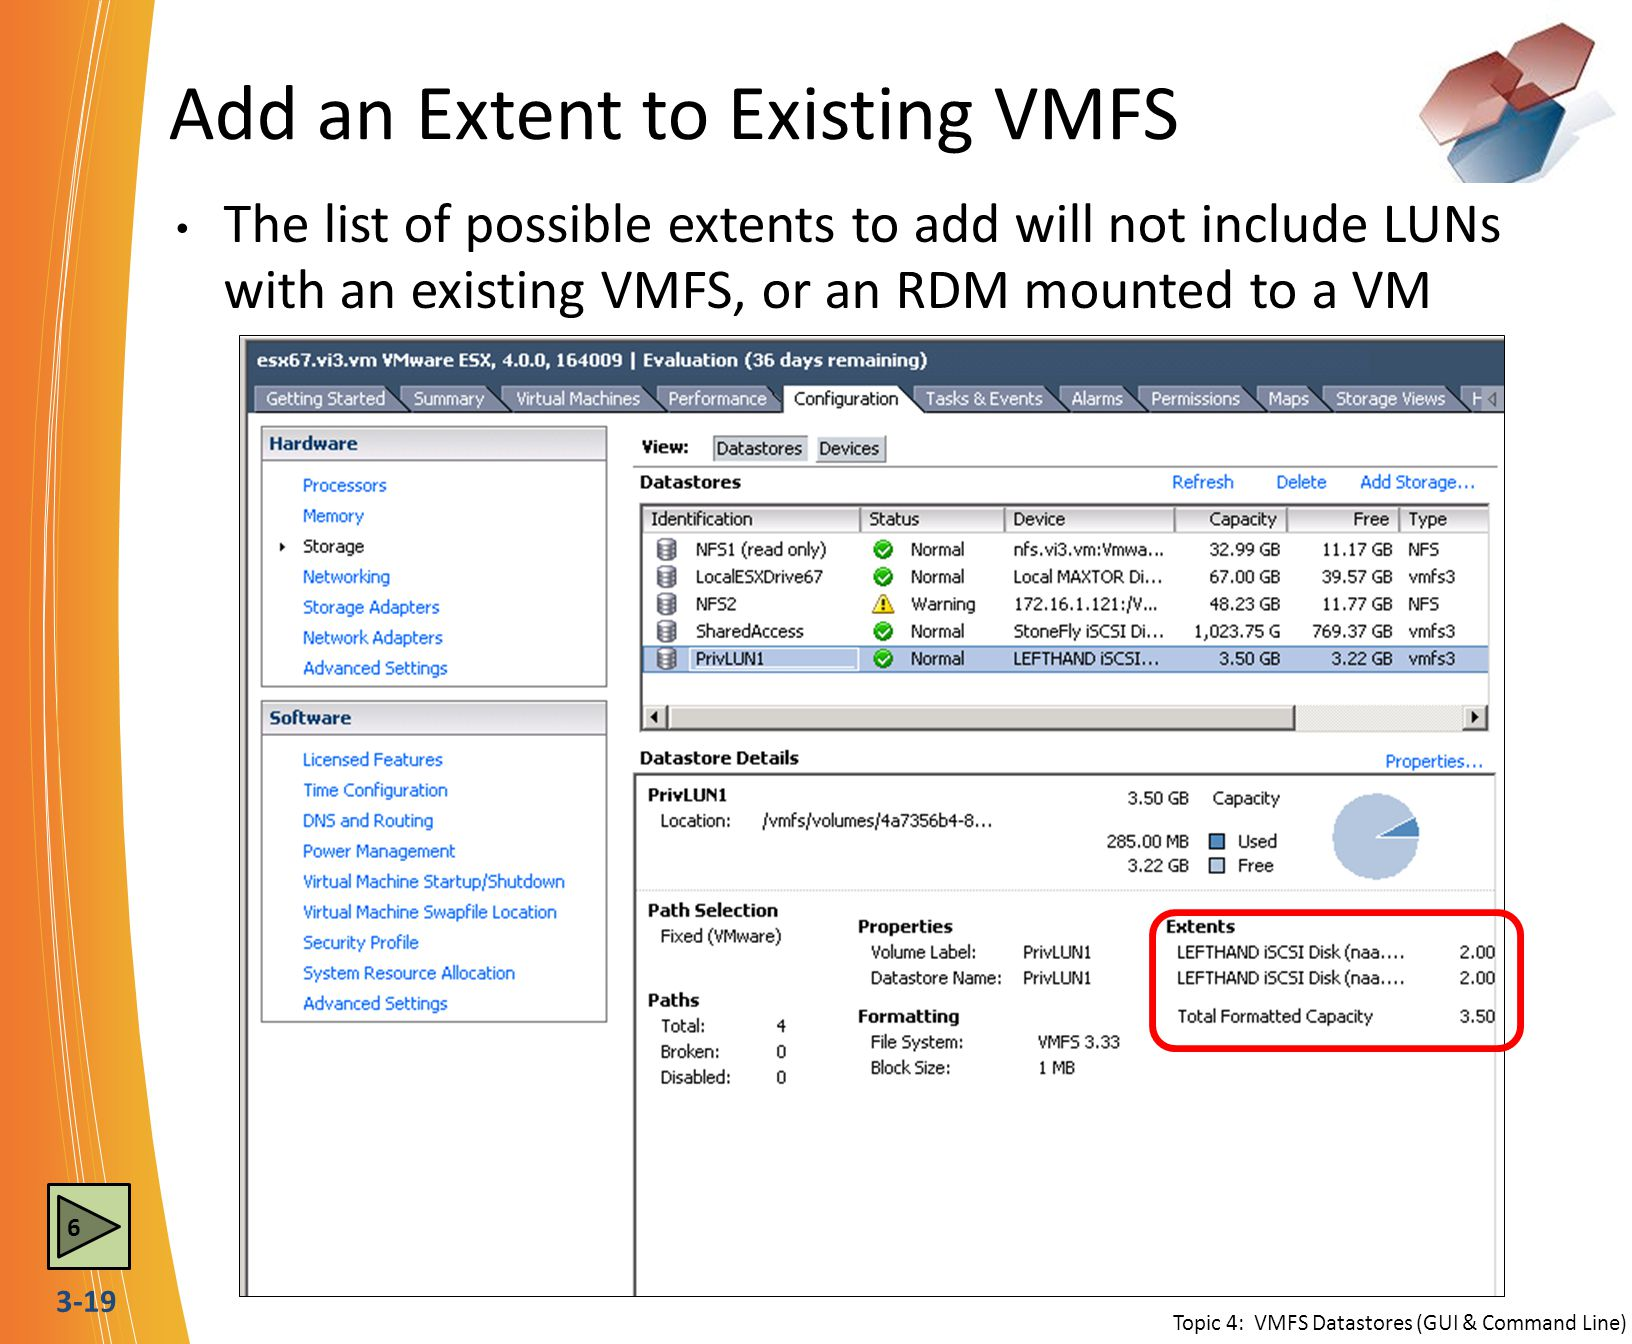 Add an Extent to Existing VMFS